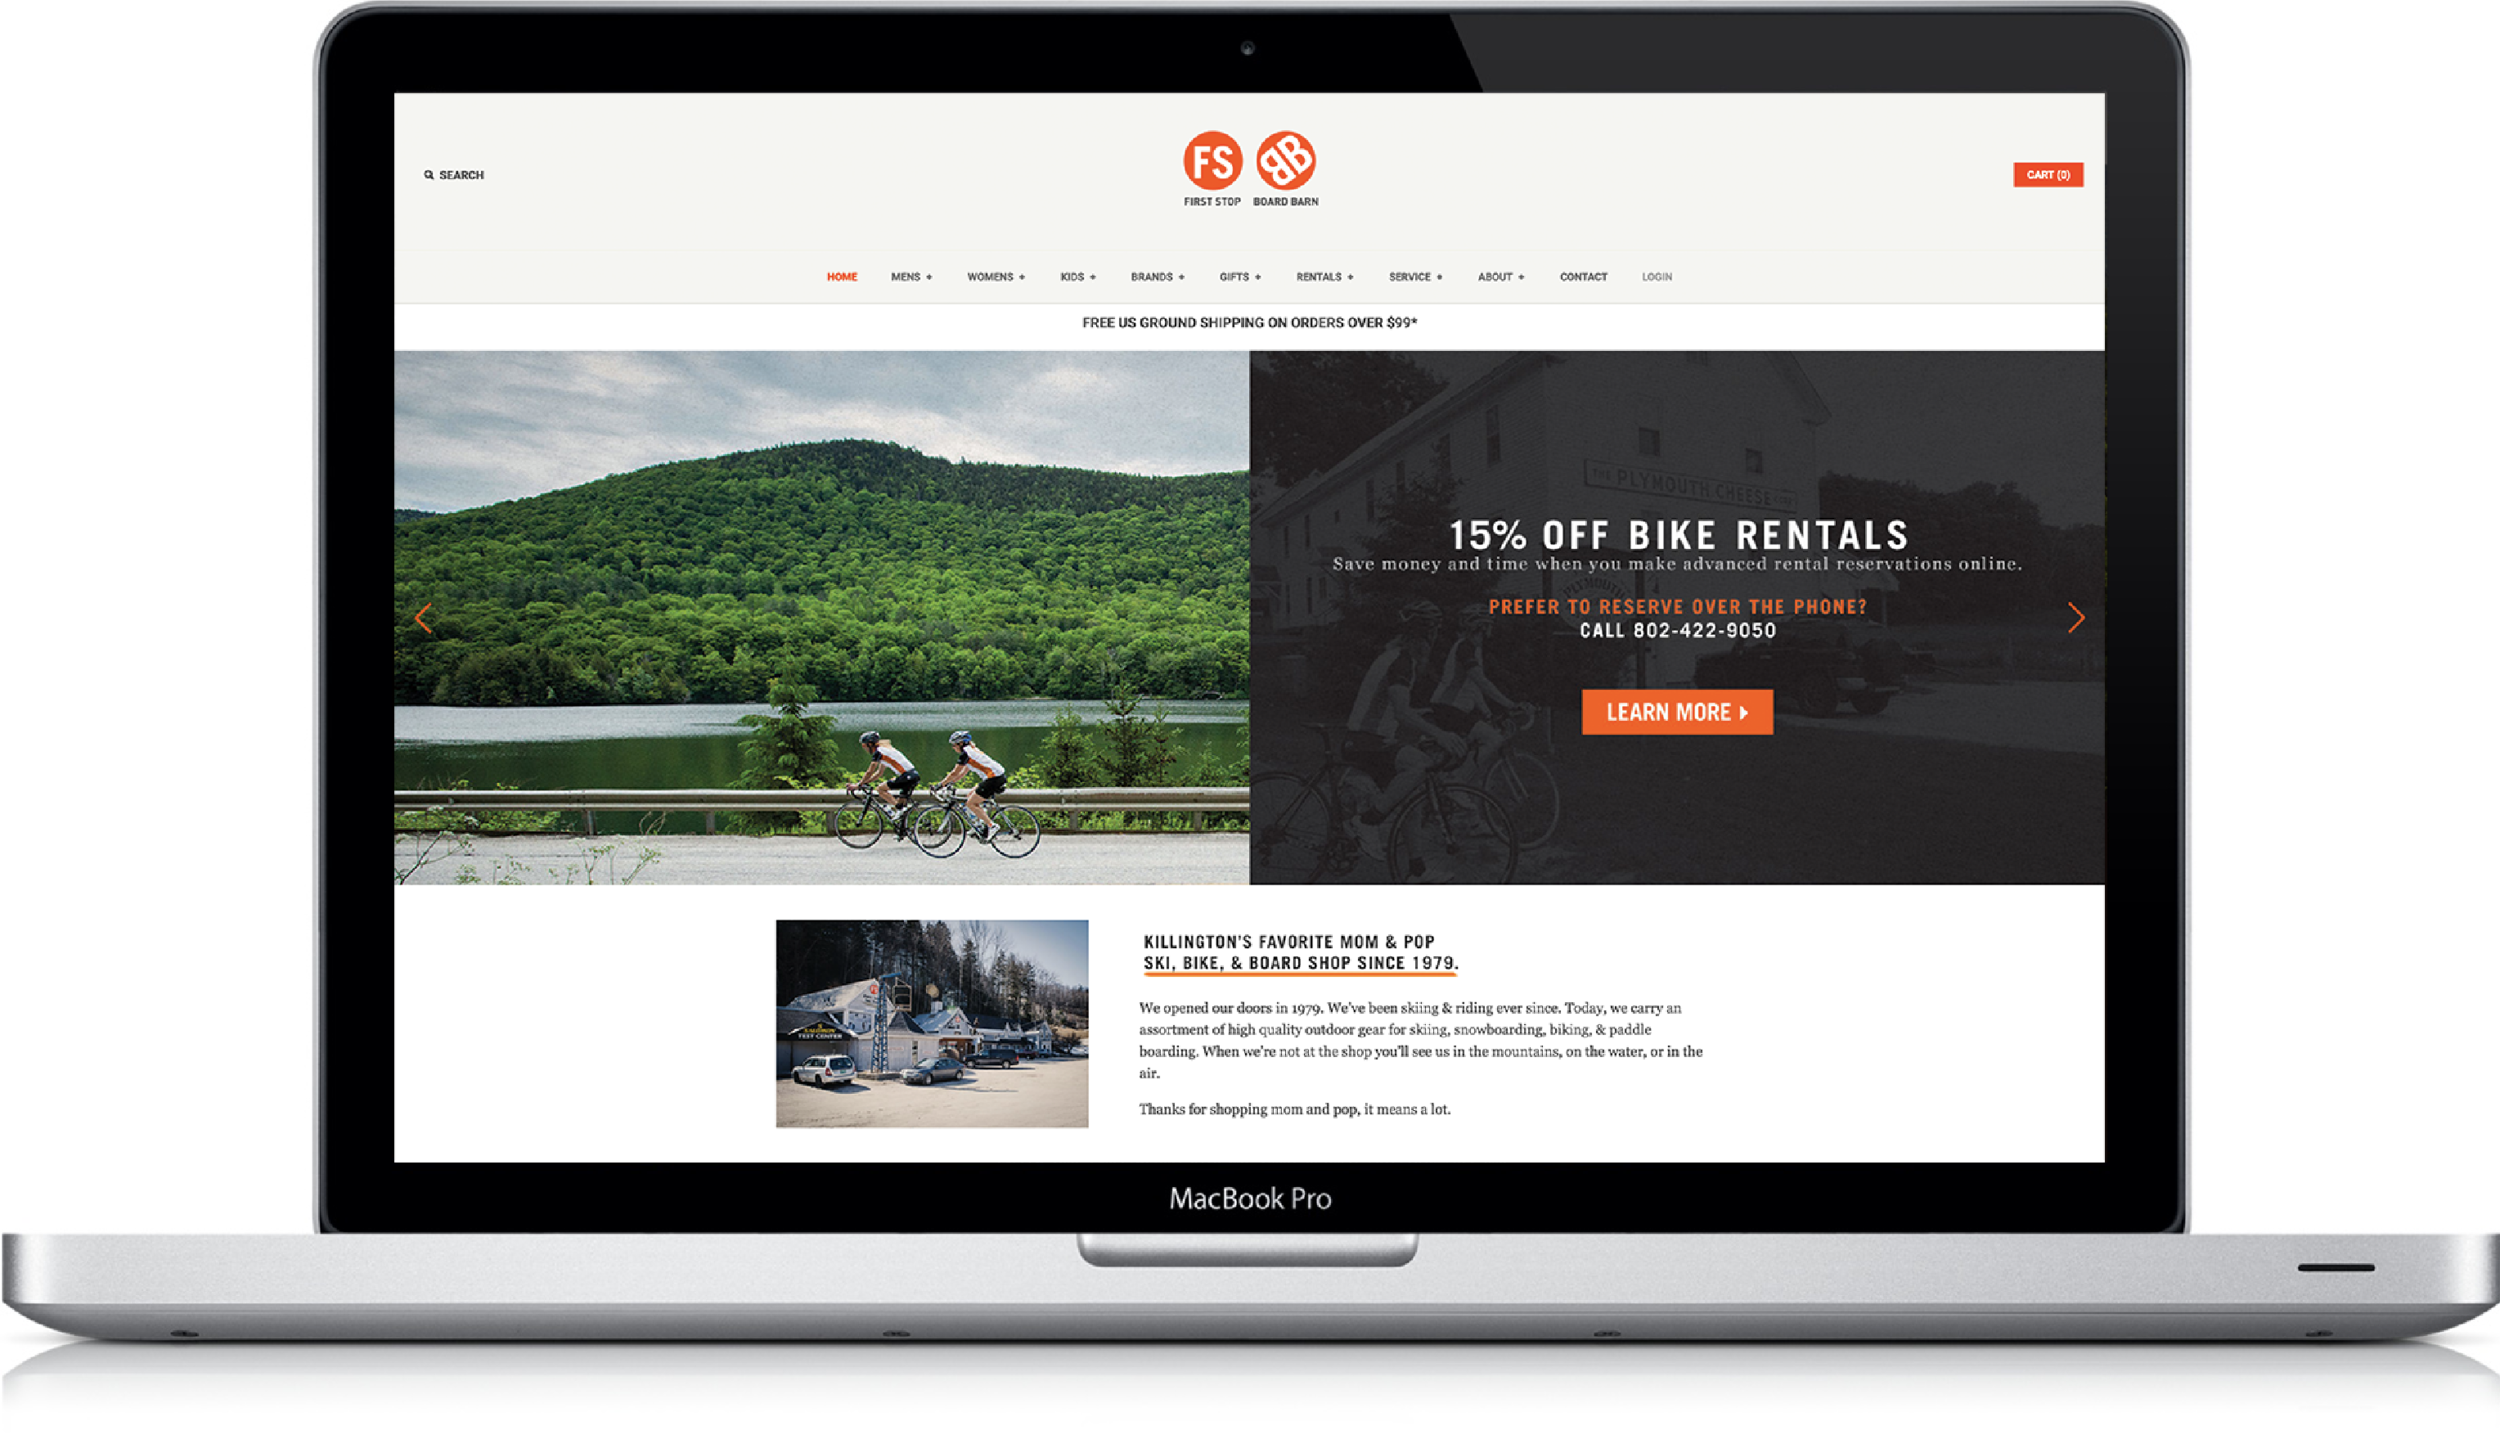 I acted as a photo assistant on this project and helped maintain the website